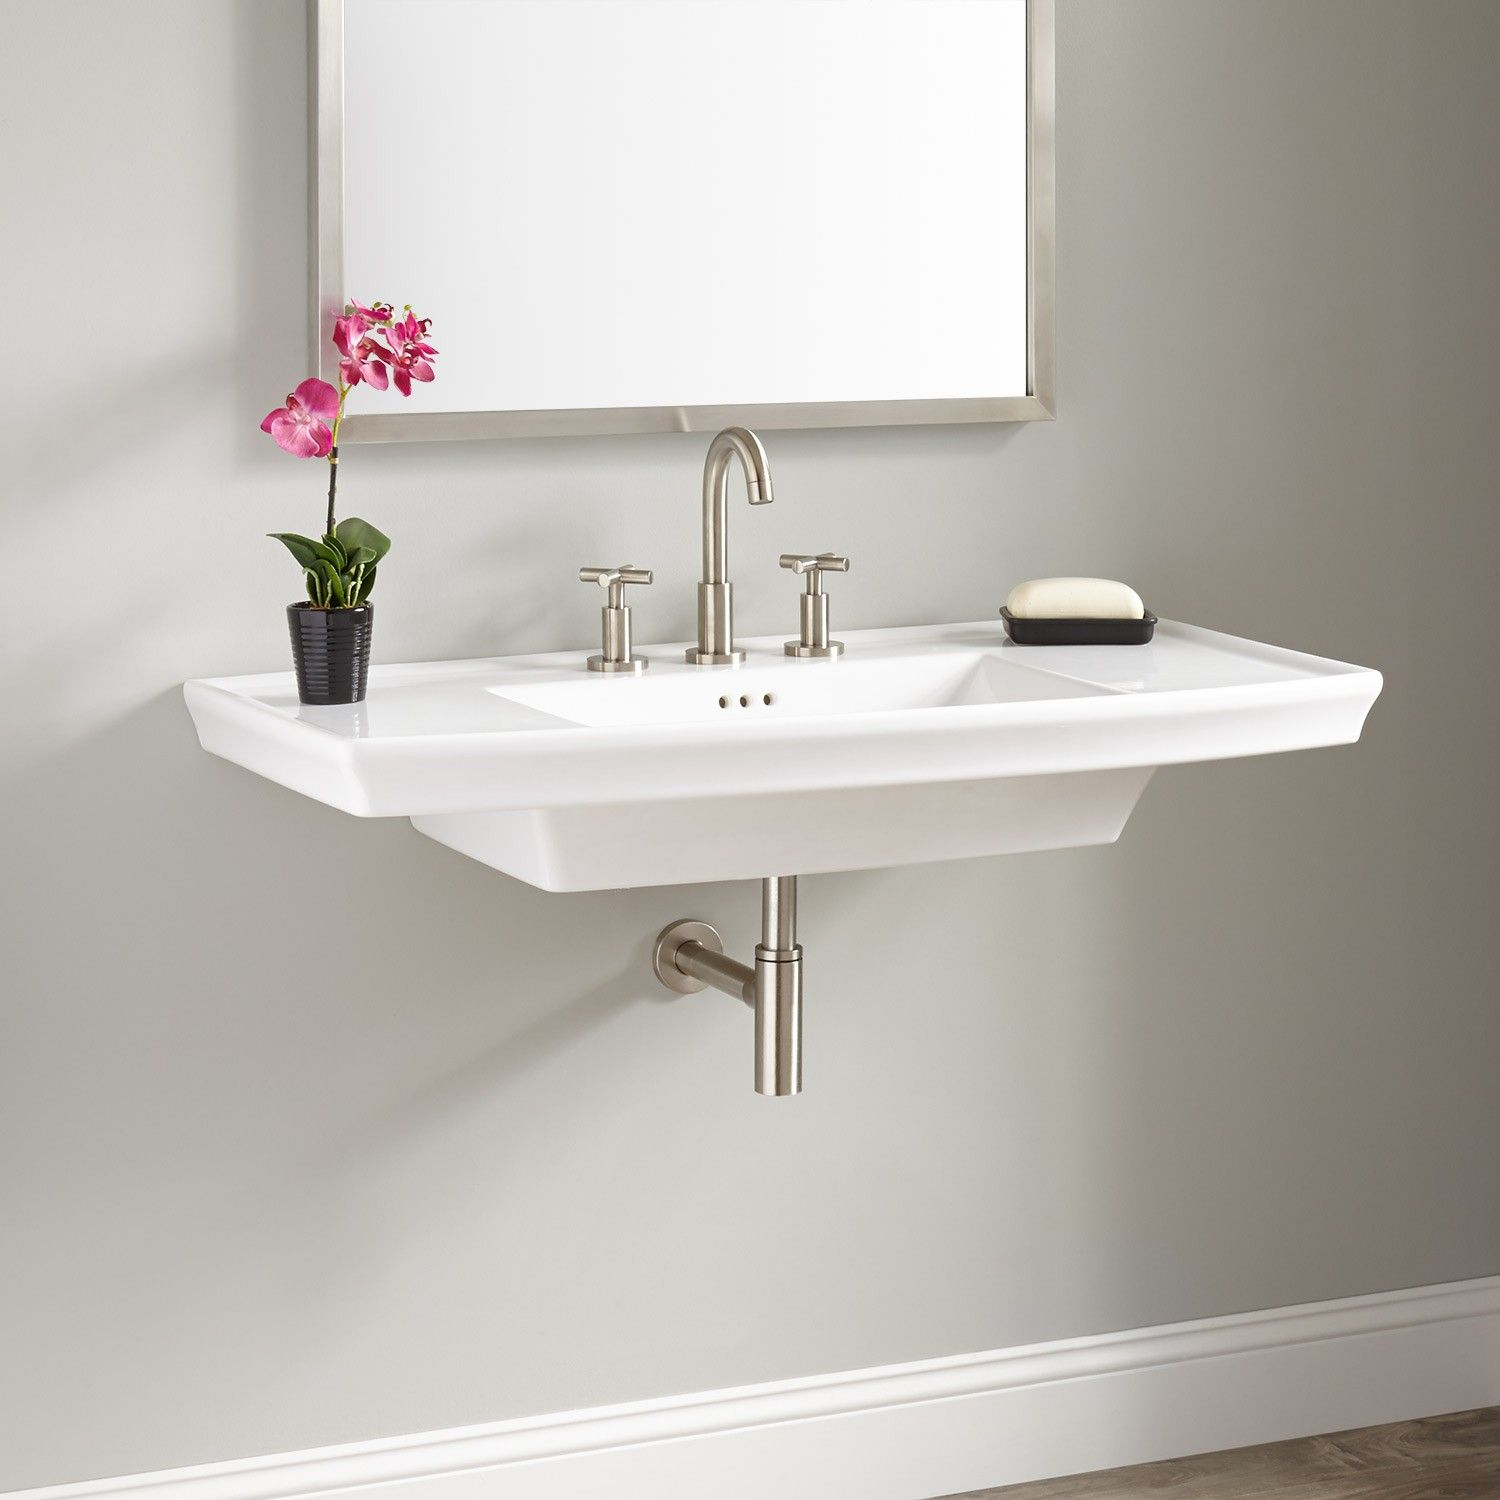 Olney Porcelain Wall Mount Sink Wall Mounted Sink Wall Mount